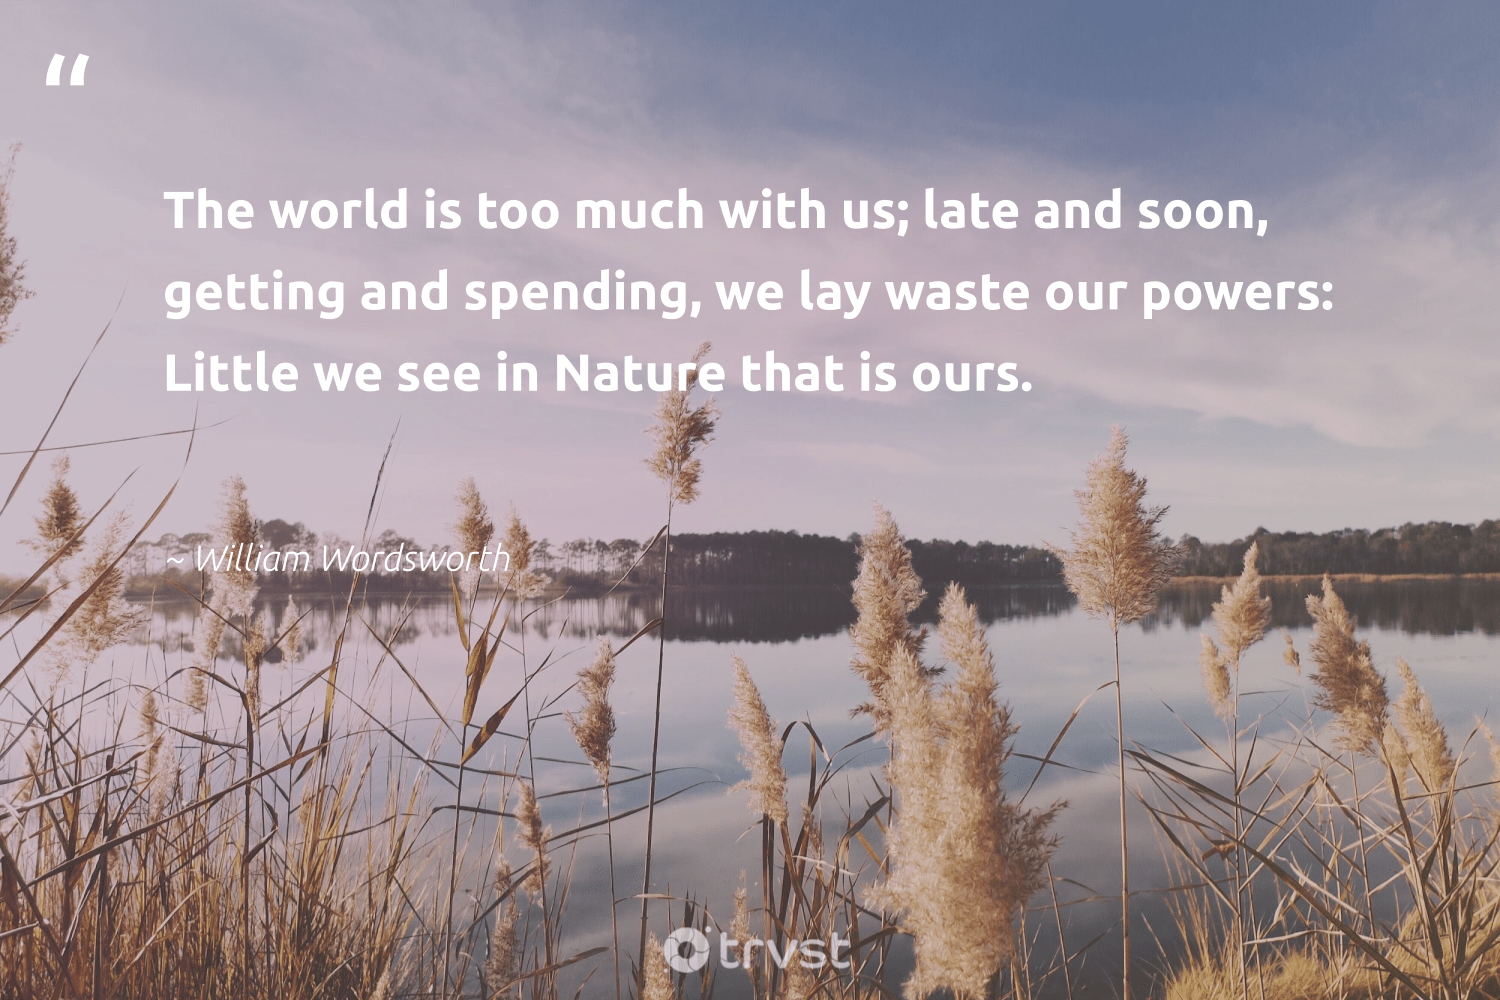 """""""The world is too much with us; late and soon, getting and spending, we lay waste our powers: Little we see in Nature that is ours.""""  - William Wordsworth #trvst #quotes #environment #waste #nature #giveback #sustainable #gogreen #planet #wildlifeplanet #sustainableliving #socialimpact"""